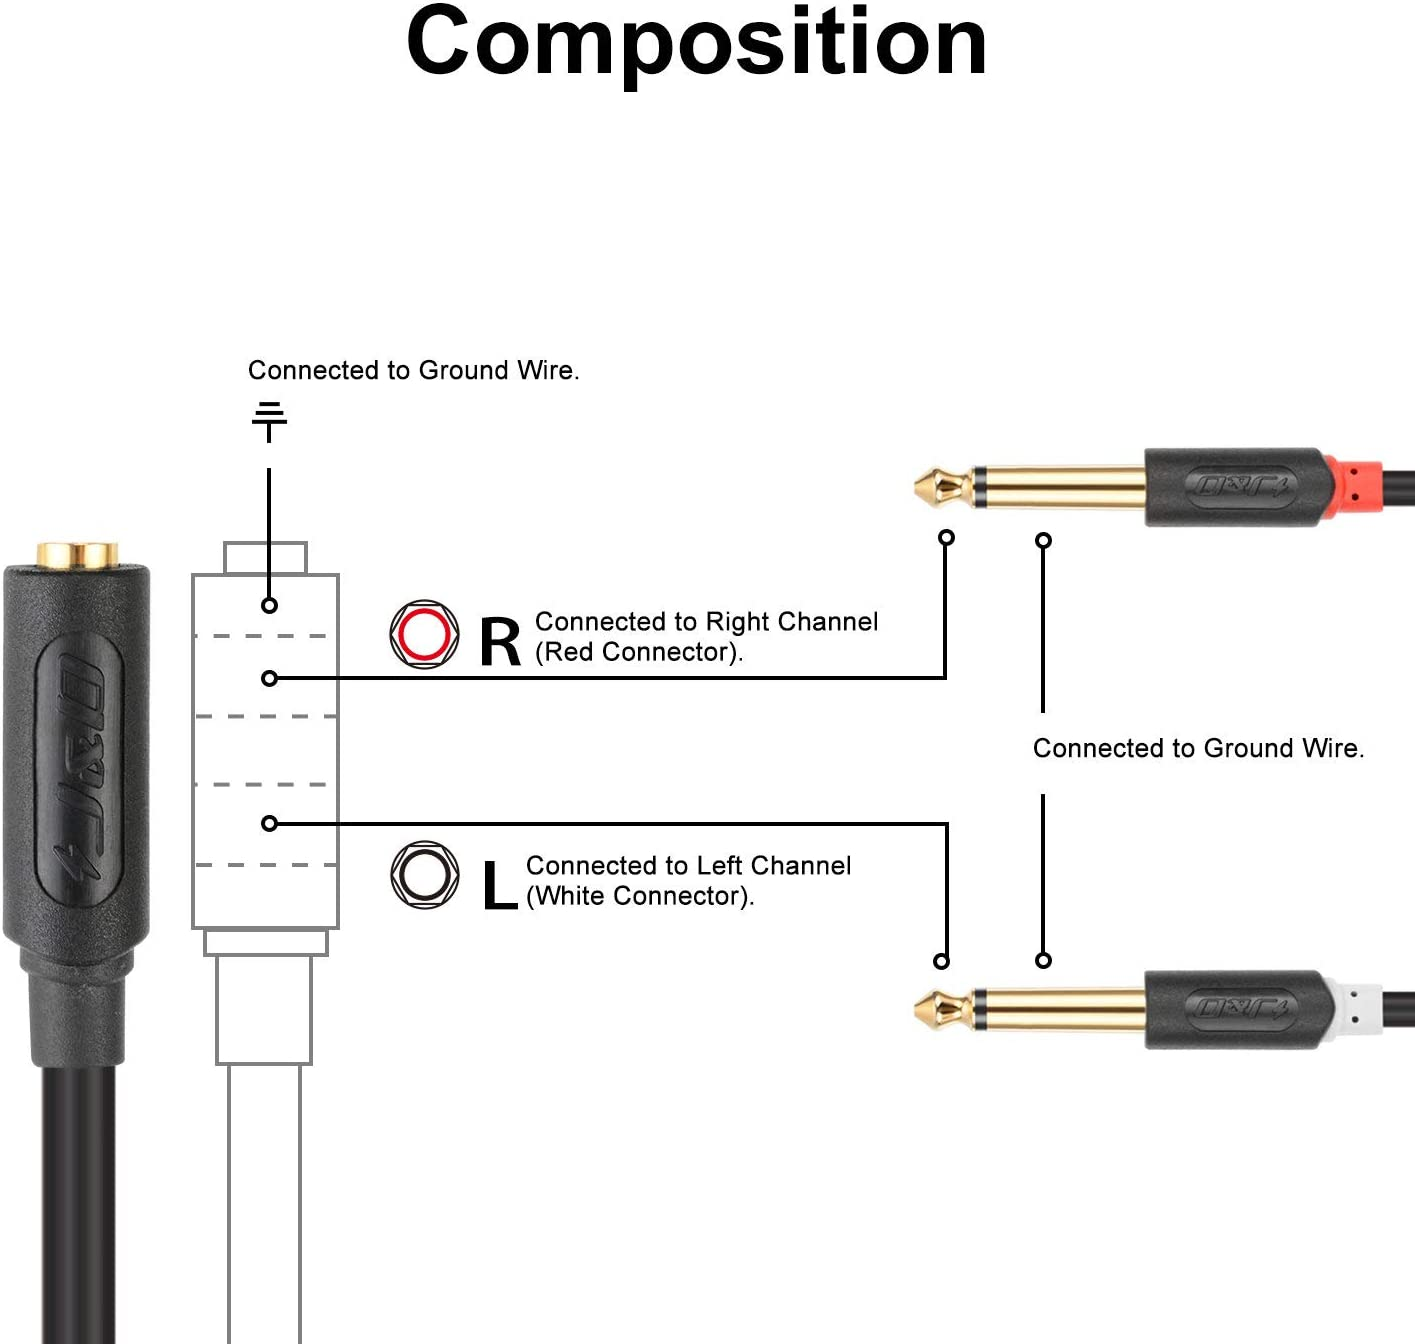 Audiowave Series 3.5mm 1//8 TRS Female to 2X 6.35mm 1//4 TS Male Mono Cable Splitter PVC Shelled Stereo Audio Cable Gold-Plated 6 Feet J/&D 3.5 mm to 2 x 6.35 mm